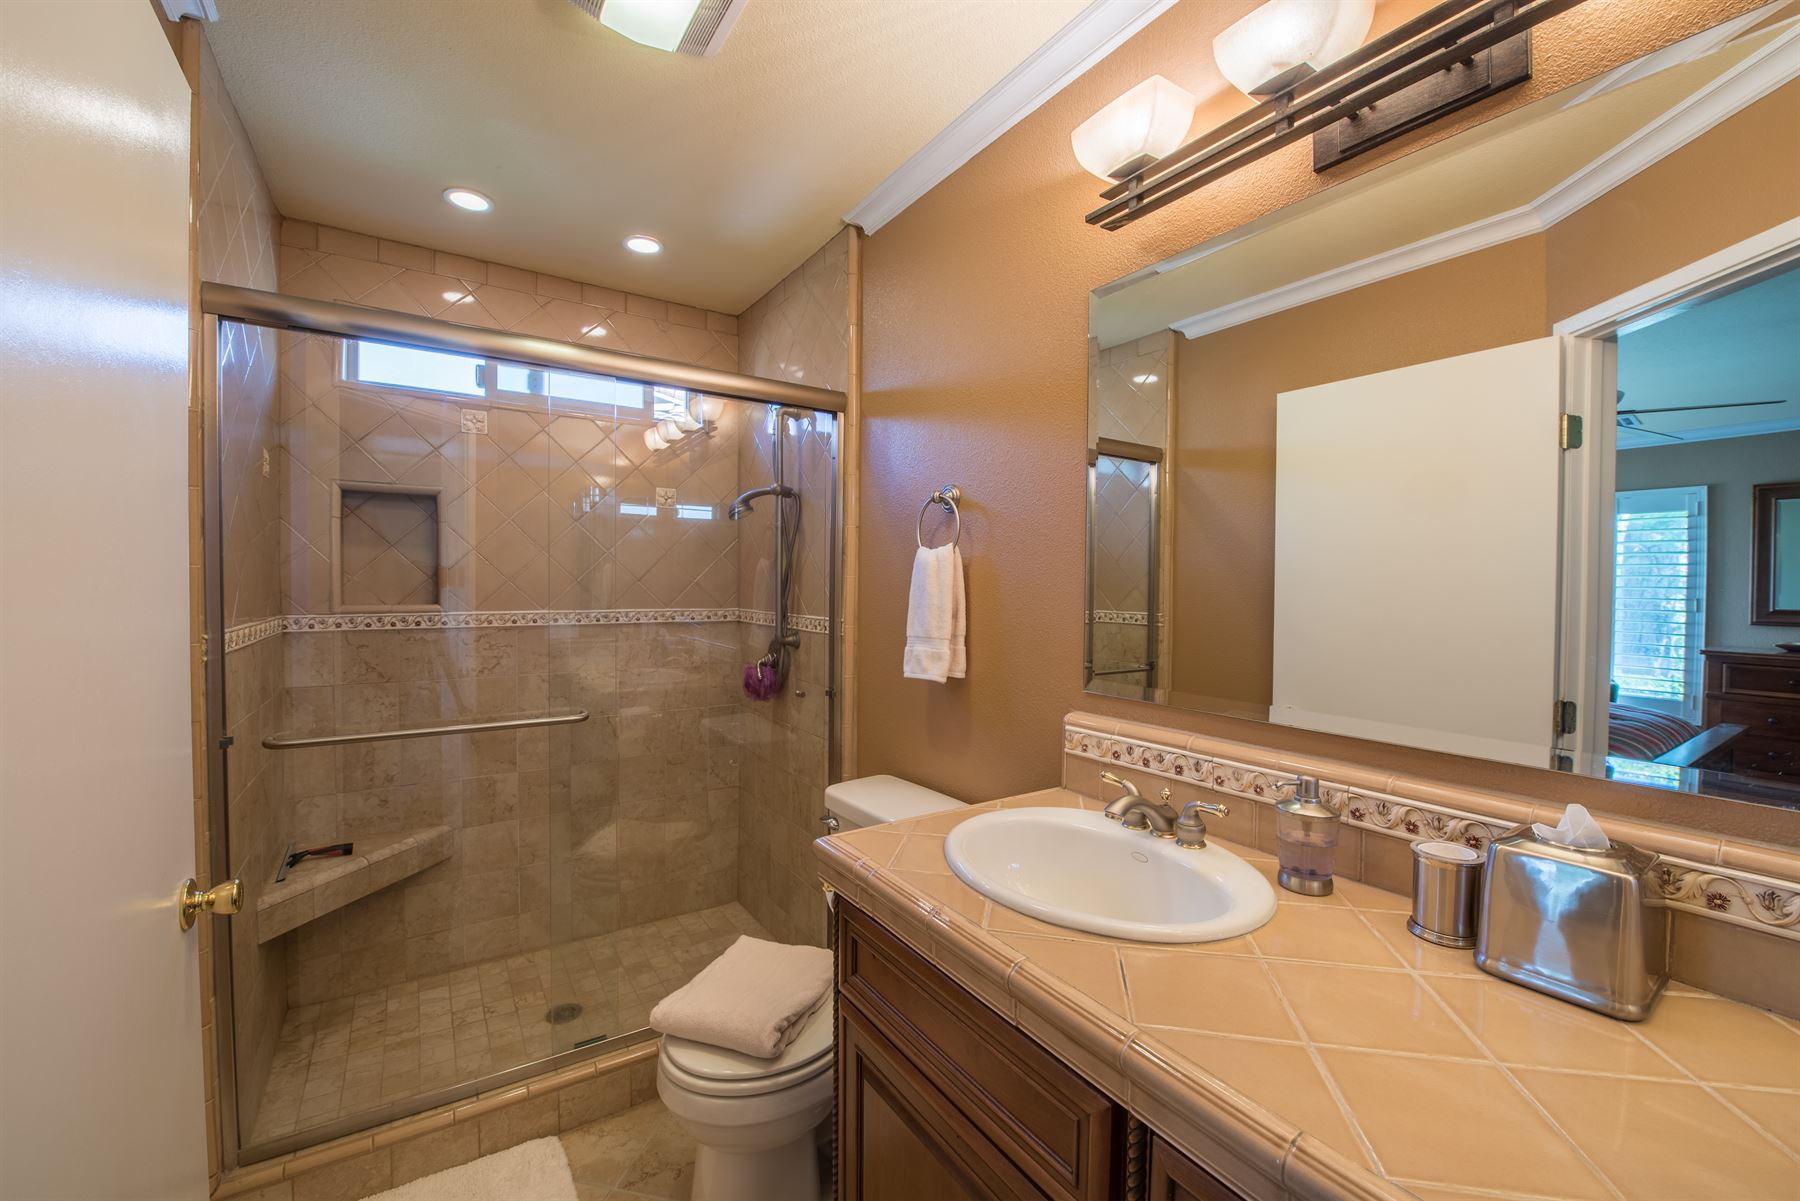 Golfer's Getaway - Interior - Bathroom with single sink and standing shower that has a toilet tucked between them along the wall